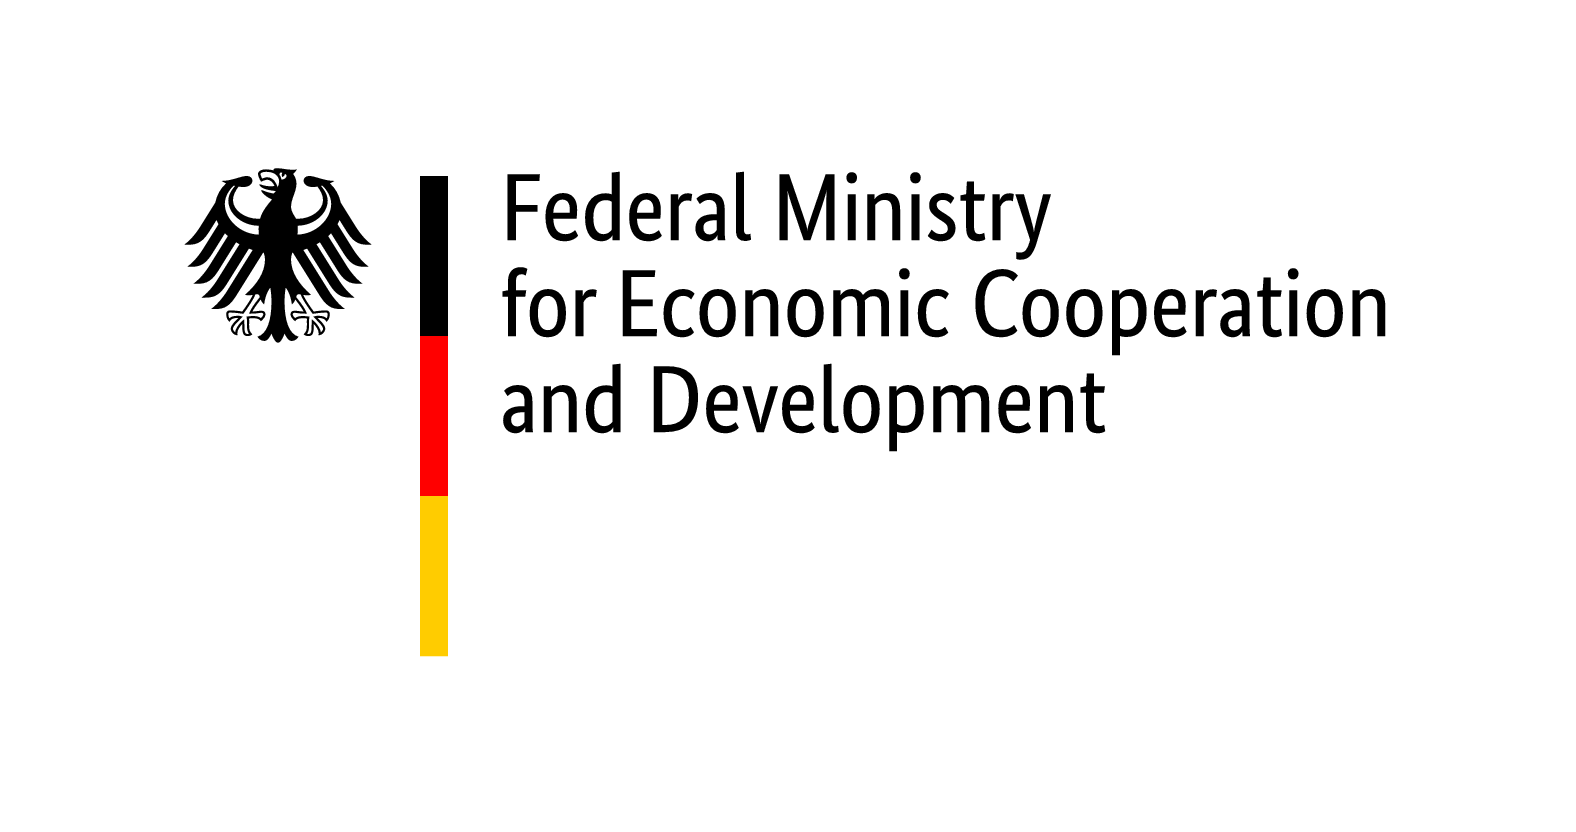 Federal Ministry for Economic Coperation and Development